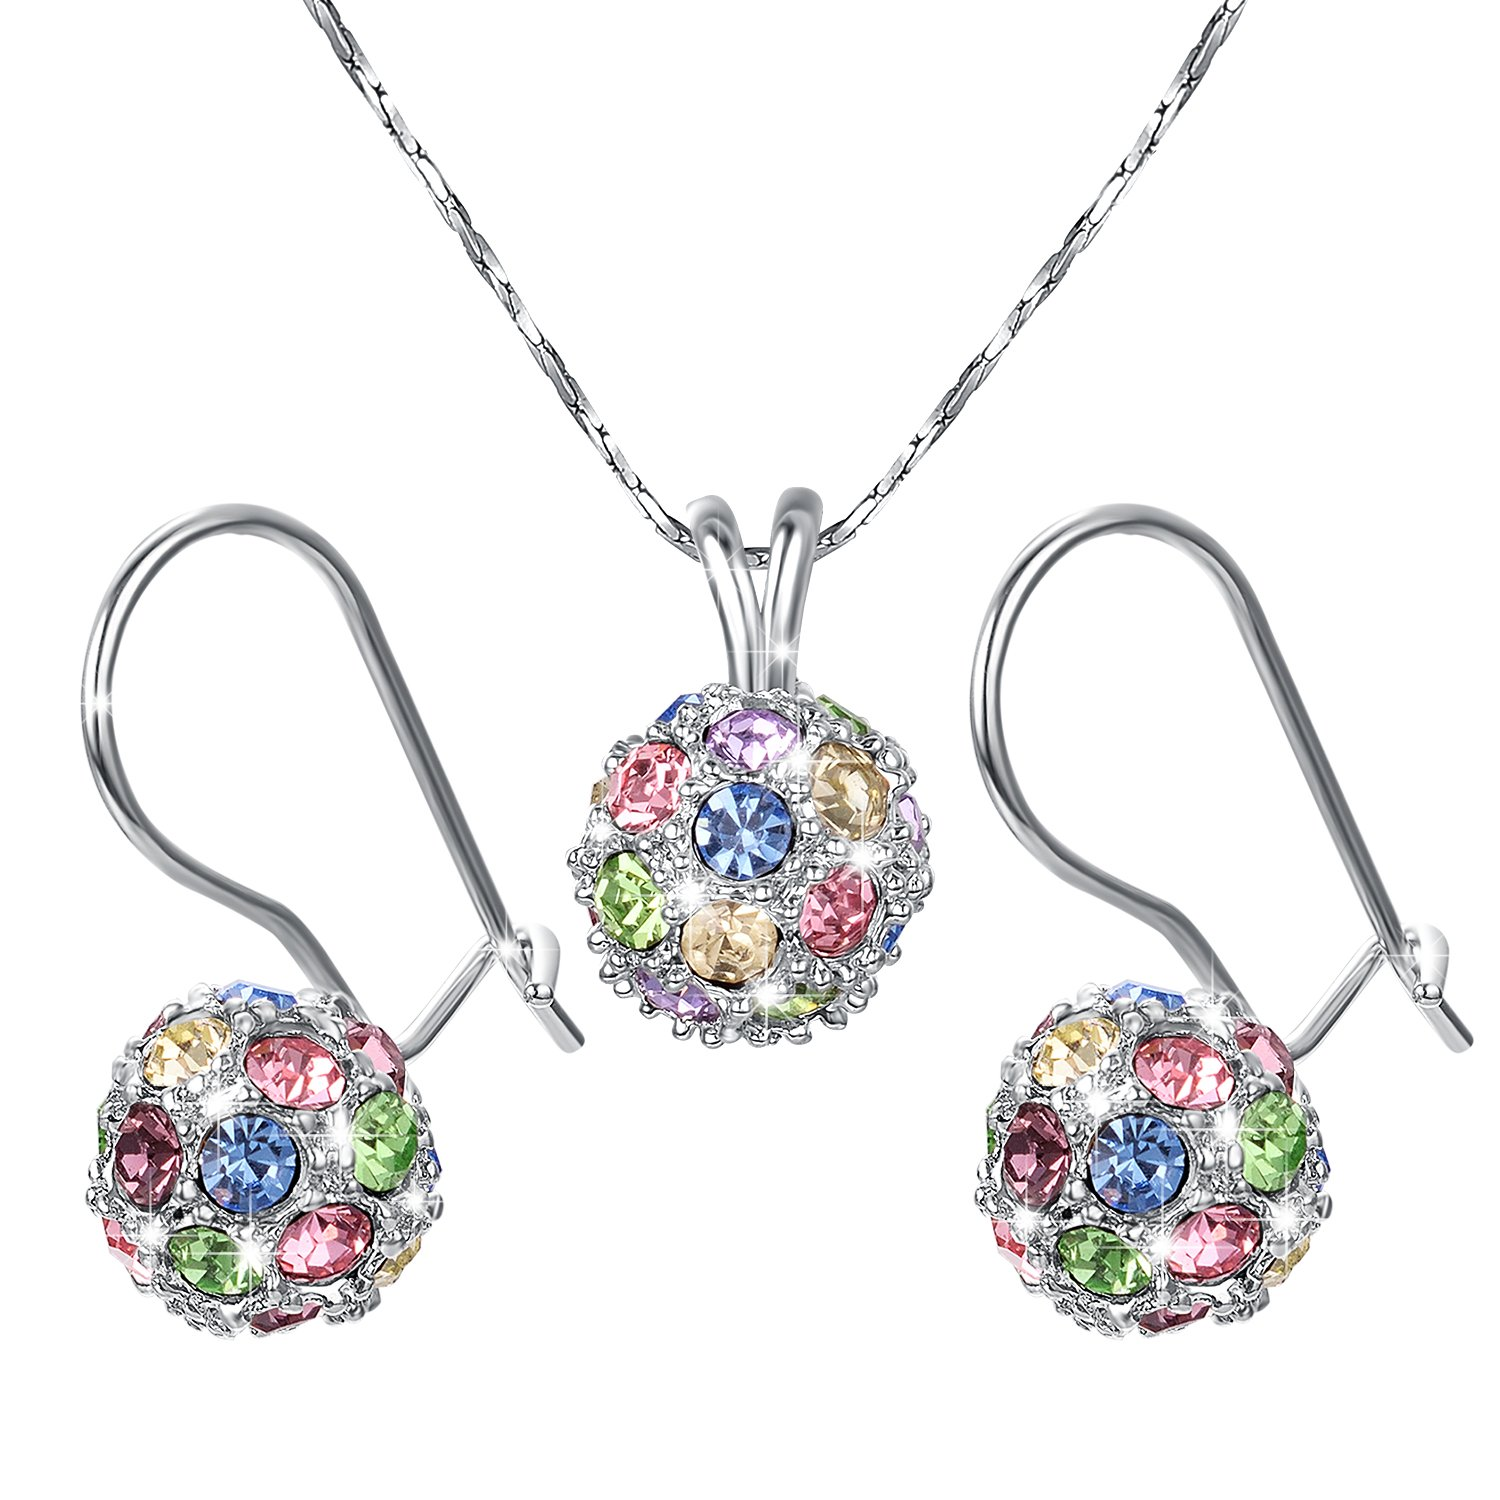 Yoursfs Crystal Ball Jewelry Set Dainty Rhinestone Earrings& Necklace Fashion Prom Jewelry Italina S007W2-CA